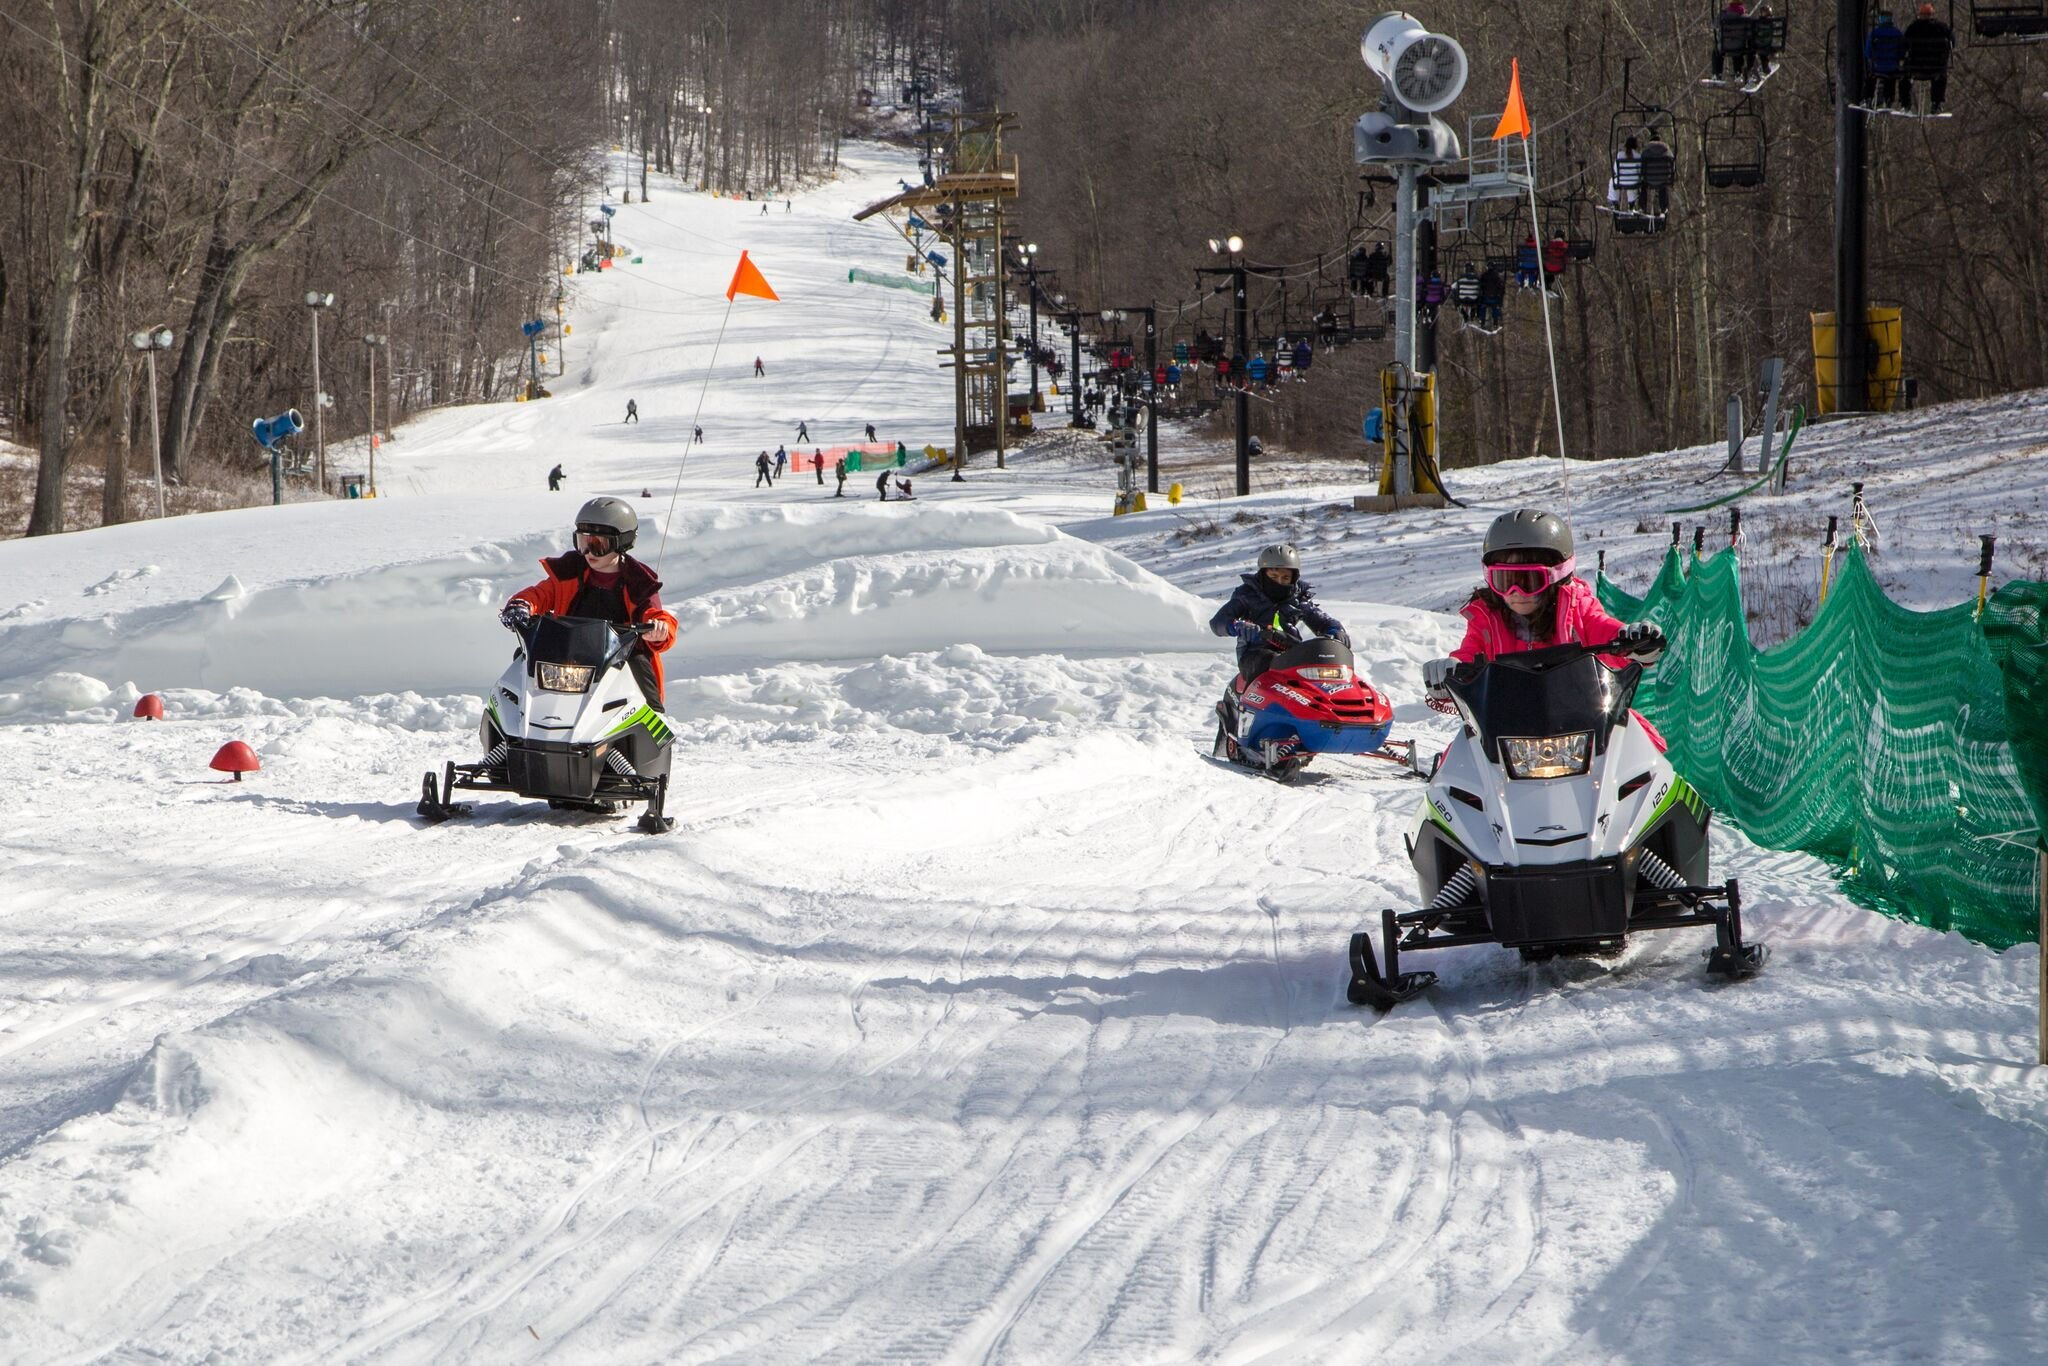 Winter Activities Return To The Omni Homestead Resort